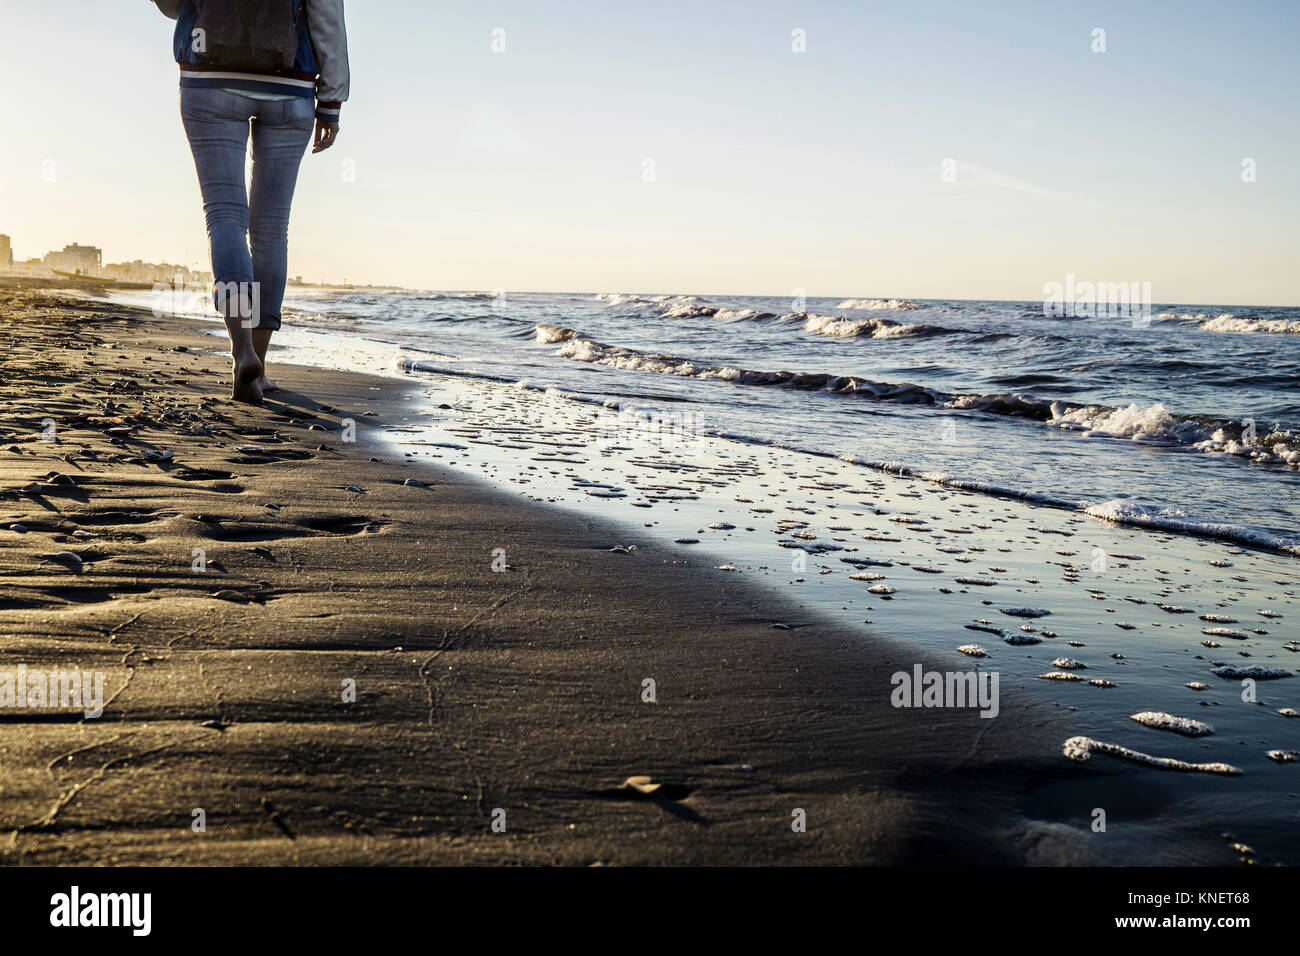 Waist down view of barefooted woman strolling along water's edge on beach, Riccione, Emilia-Romagna, Italy - Stock Image